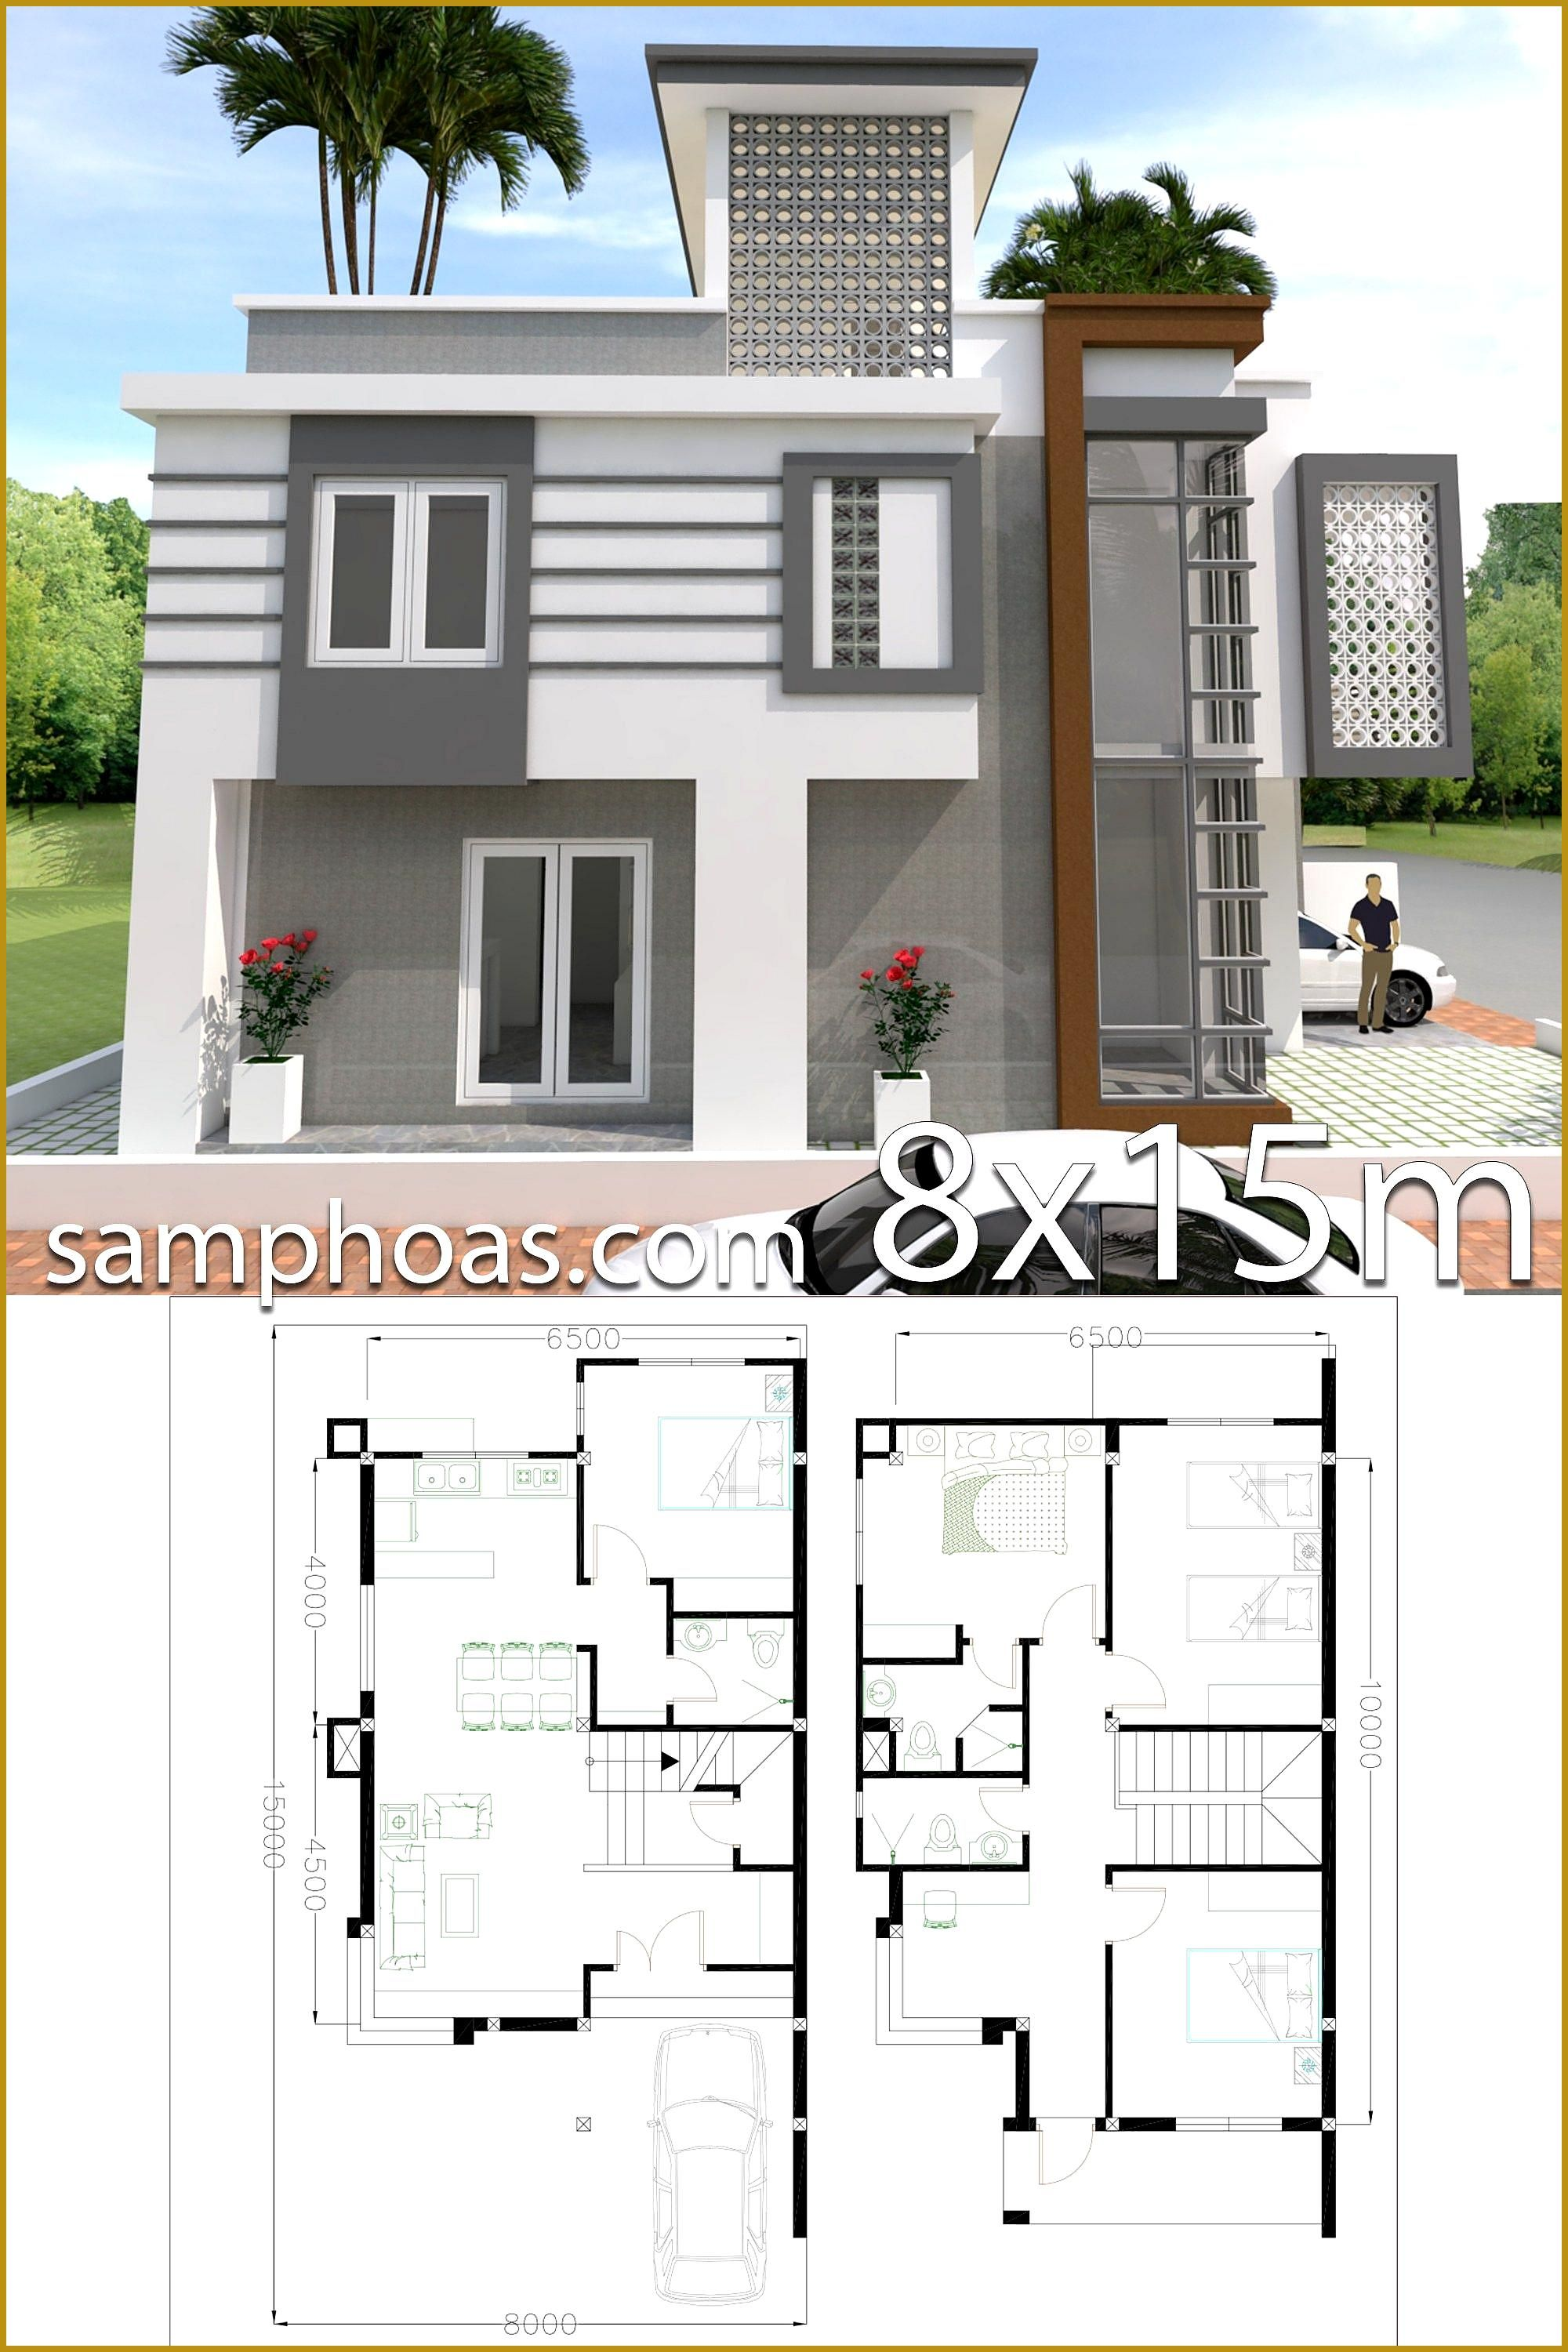 Home Design Plan 8x15m With 4 Bedrooms Samphoas Plan Home Design Plan 8x15m With 4 Bedroo Architectural House Plans House Architecture Design Home Design Plan